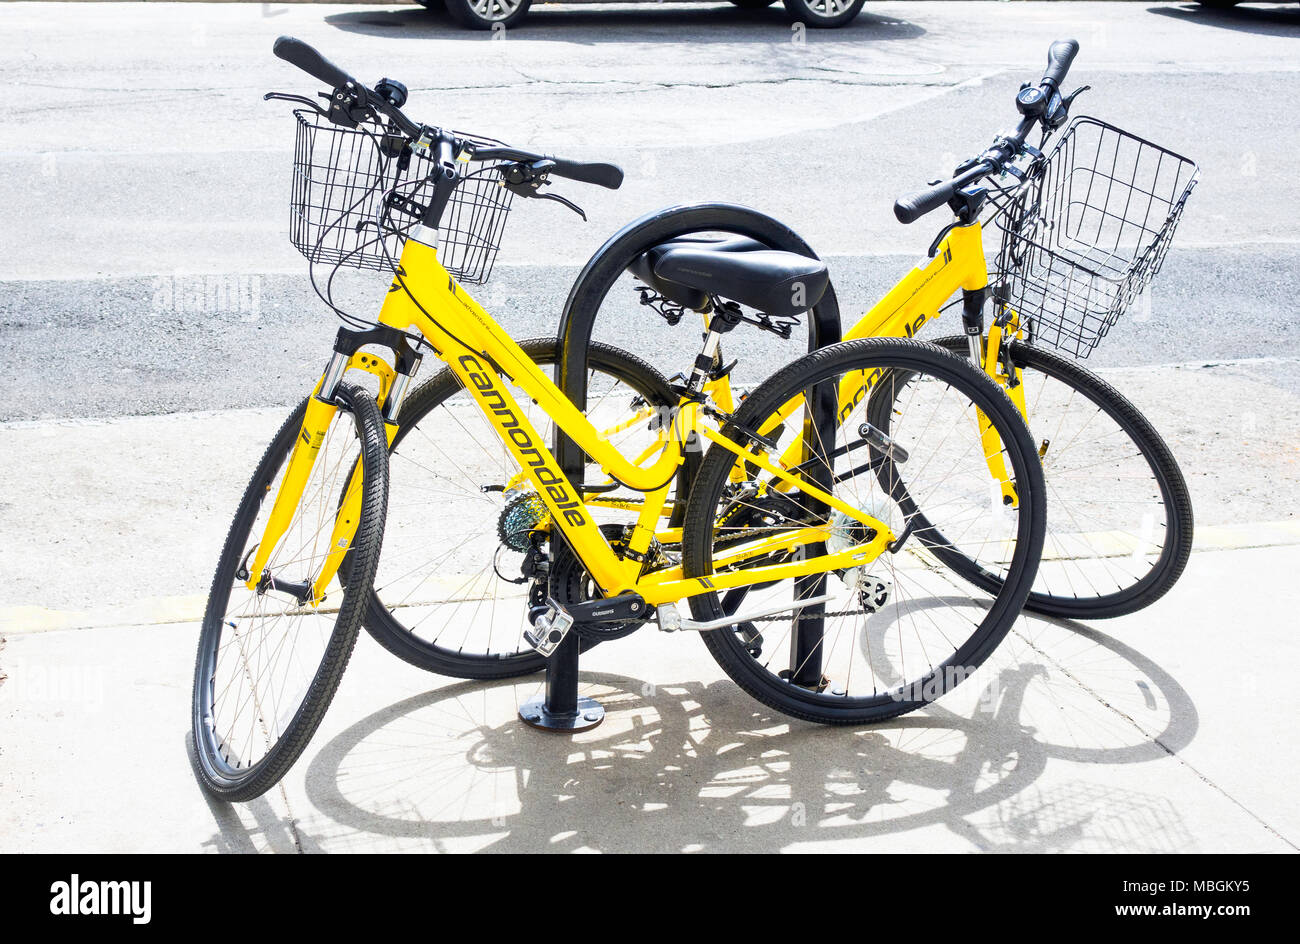 Two yellow Cannondale Road Bikes for female riders secured to a bike post - Stock Image